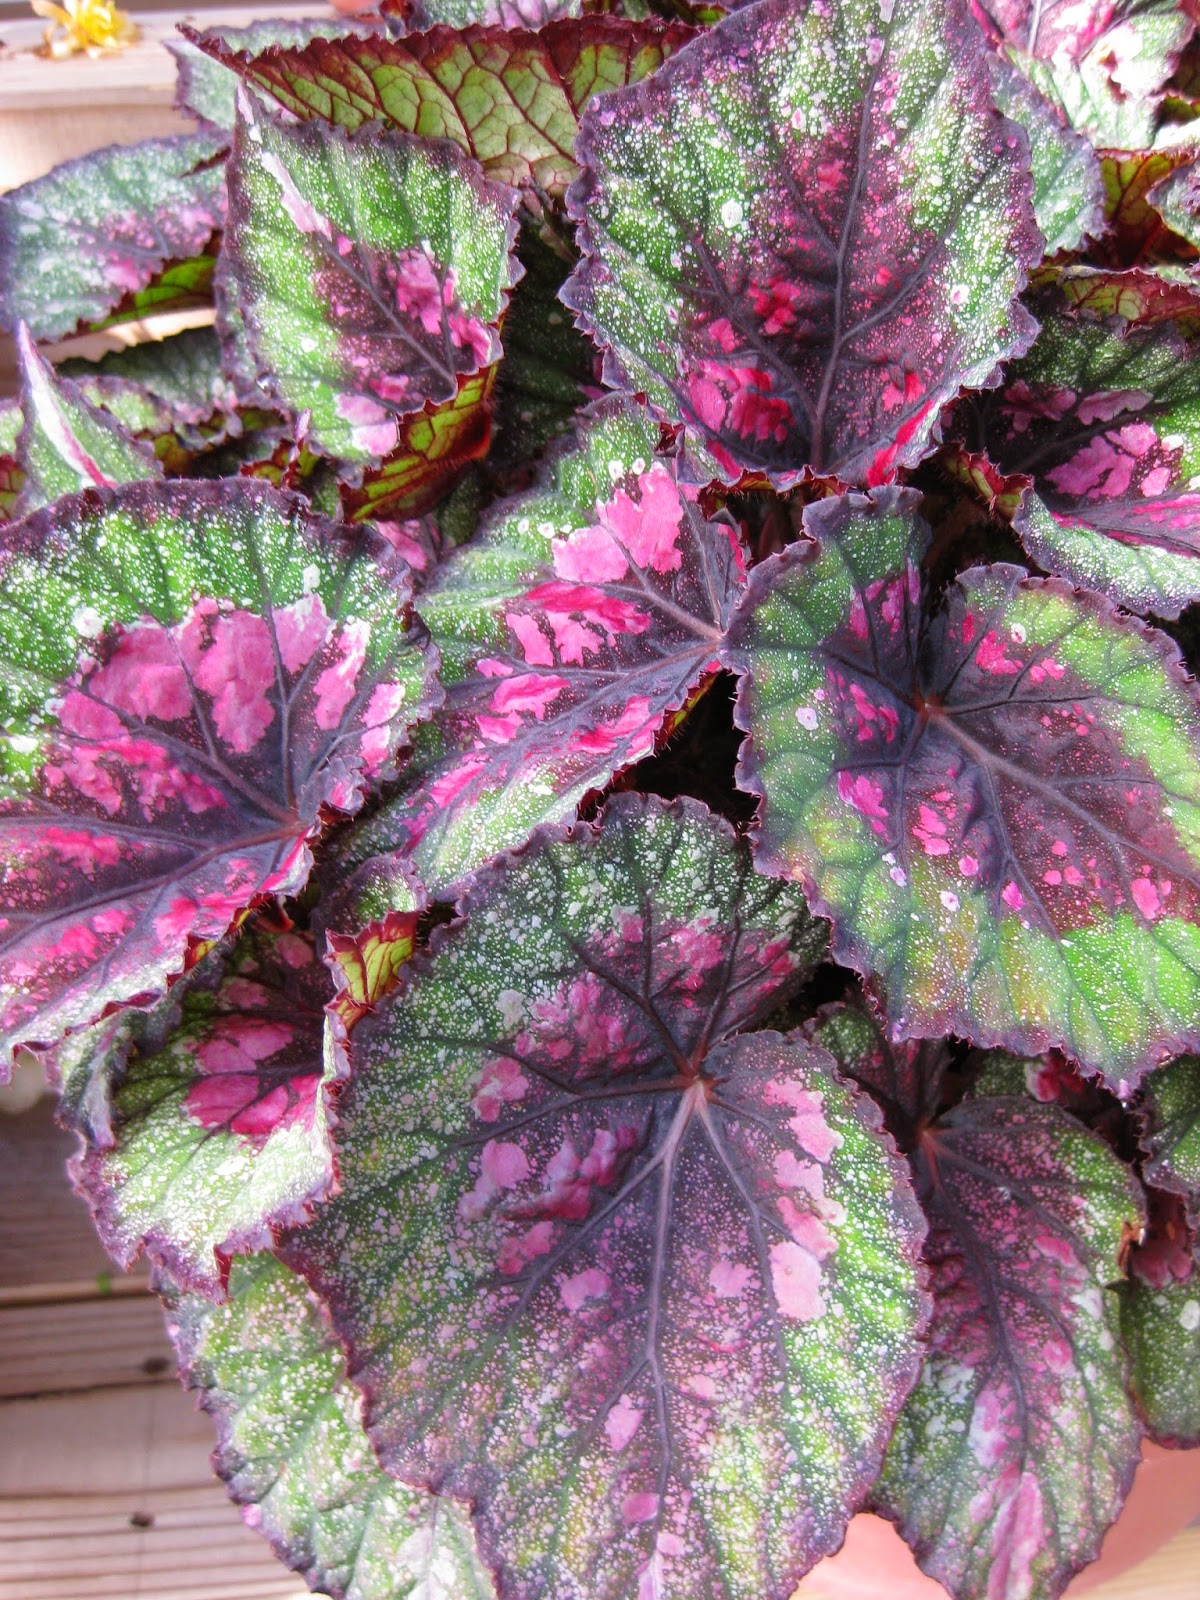 Winter Mode 2015 Rotary Botanical Gardens - Hort Blog: Foliage Begonias